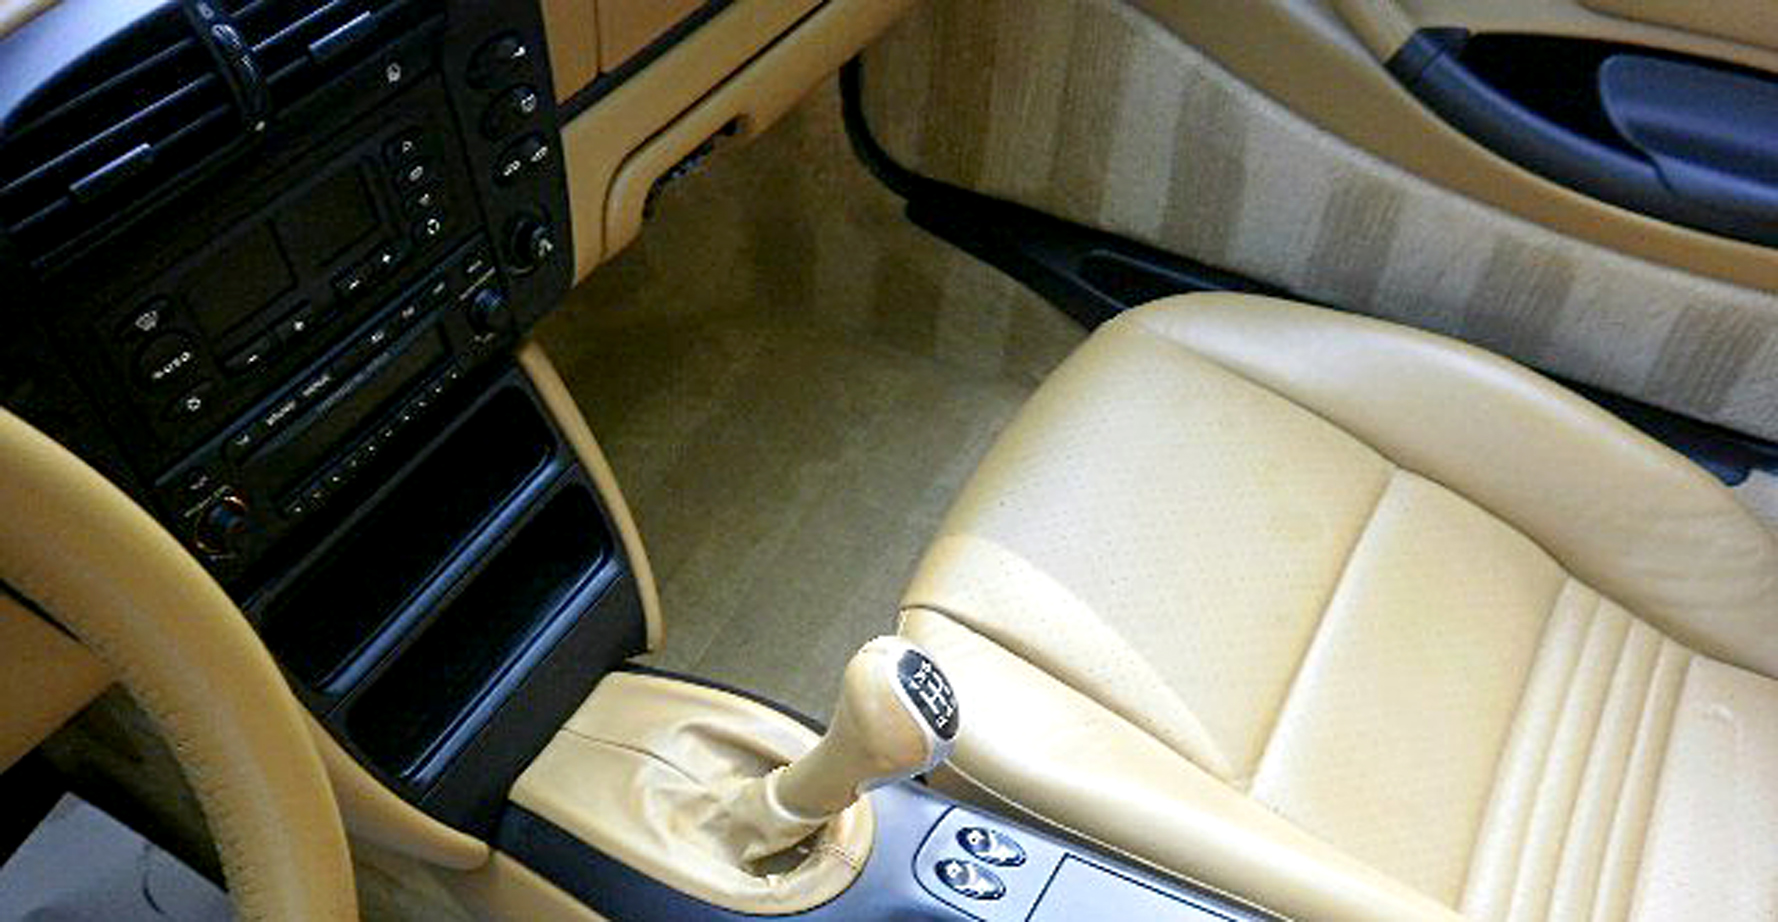 these stripes in the interior look horrible and are not natural